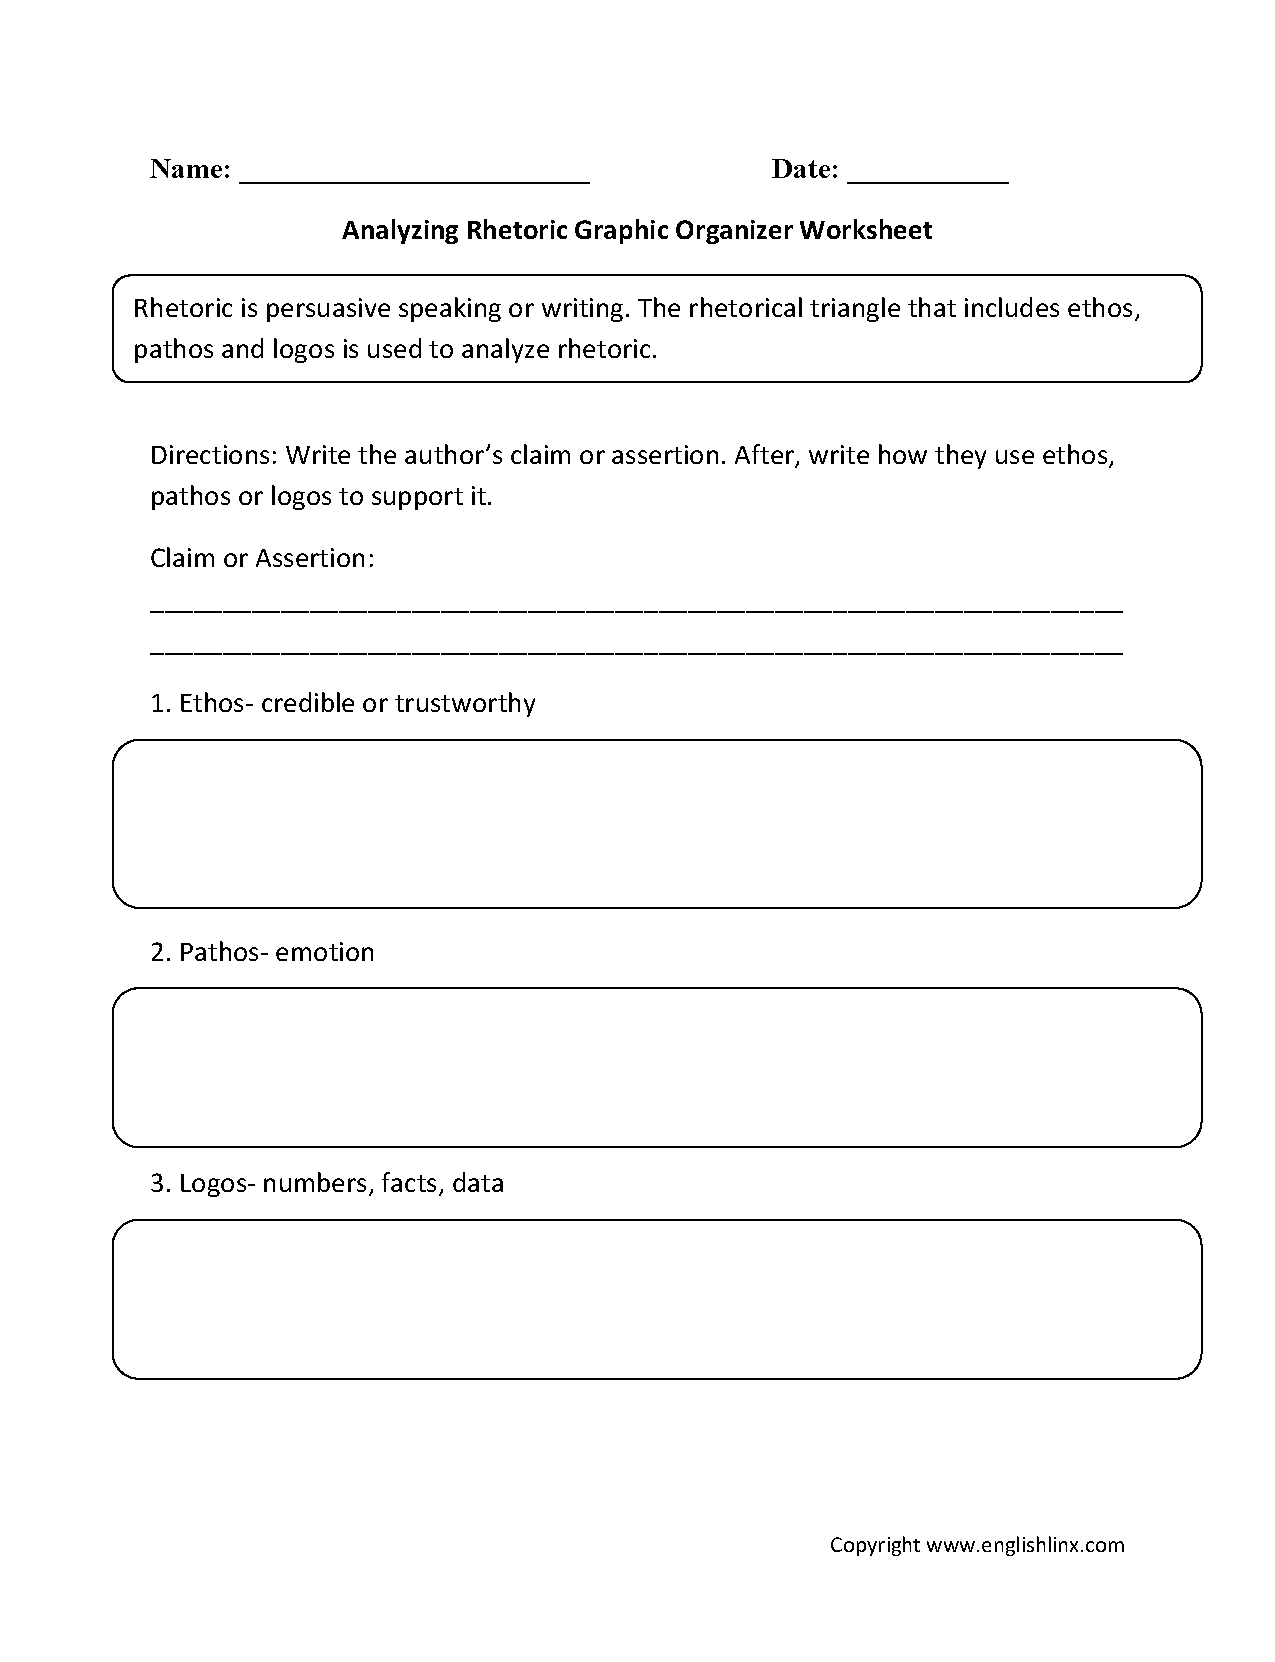 Worksheets Ethos Logos Pathos Worksheet graphic organizers worksheets rhetoric worksheets